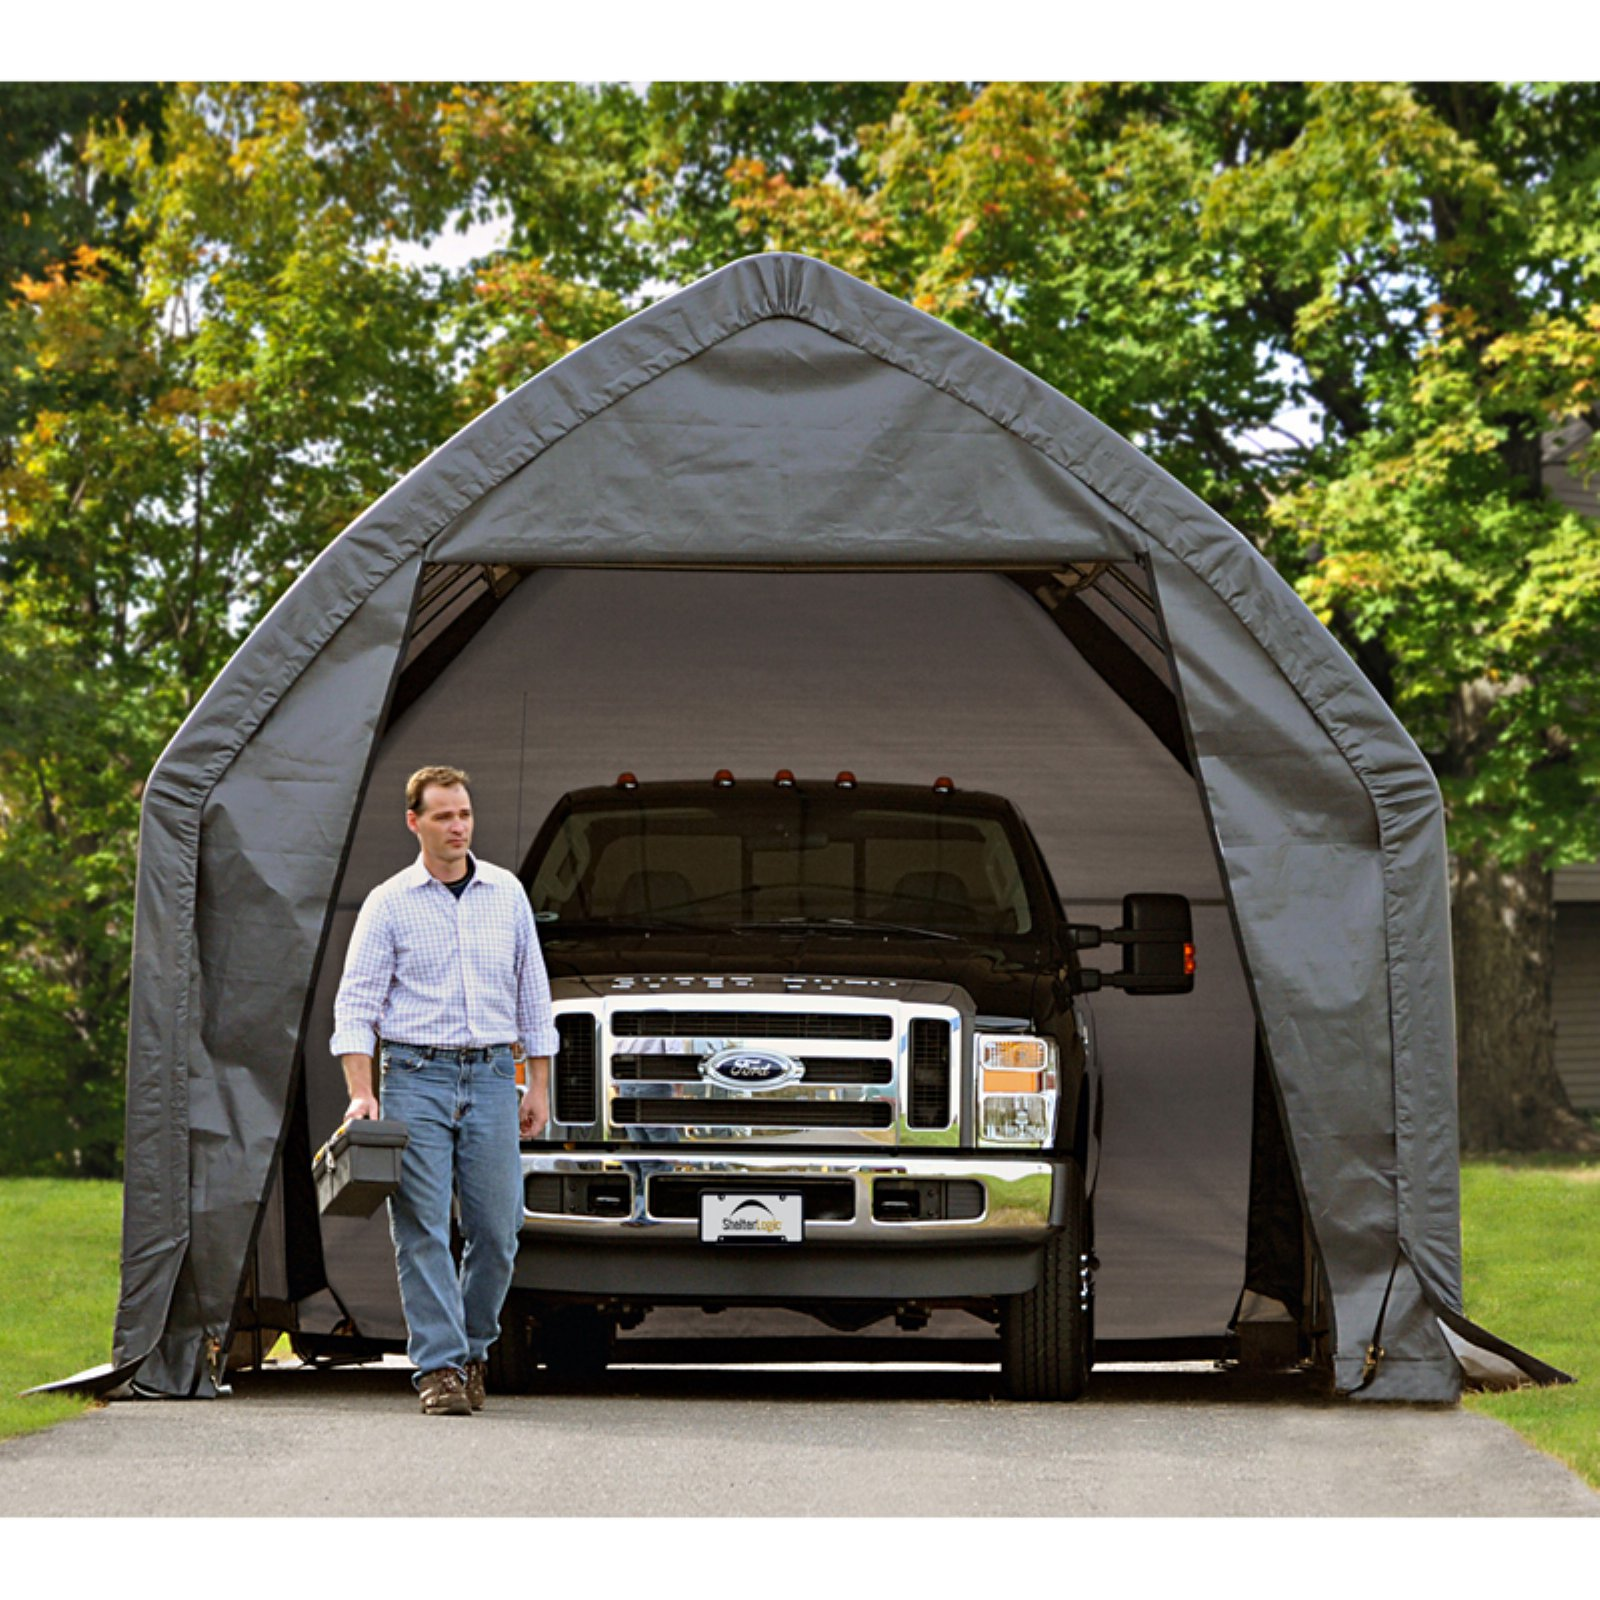 ShelterLogic Garage-In-A-Box 13x20' x 12'Peak Style for SUV/Truck, Gray